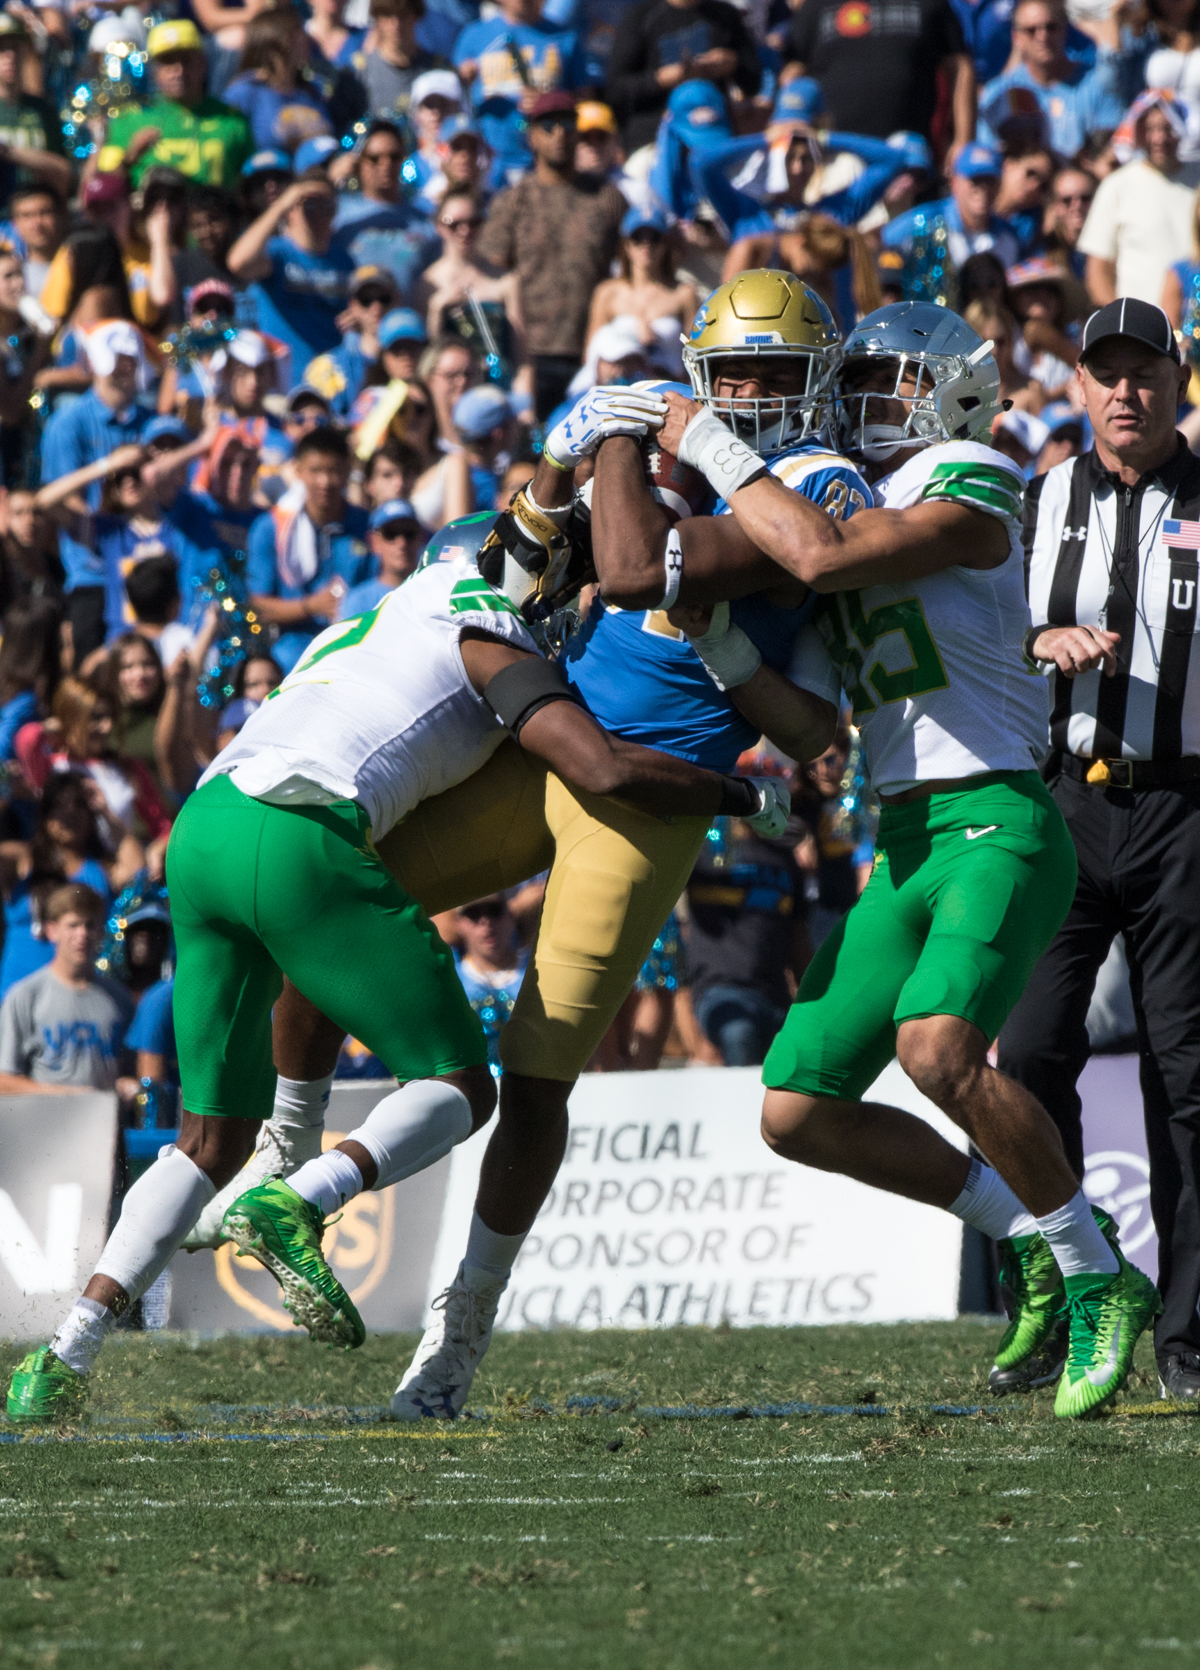 UCLA tight end Jordan Wilson (#87) is dragged down by two Oregon defenders. The Oregon Ducks rallied during the second quarter to go into halftime tied 14-14 with the UCLA Bruins at Rose Bowl Stadium in Pasadena, California. Photo by Austin Hicks, Oregon News Lab